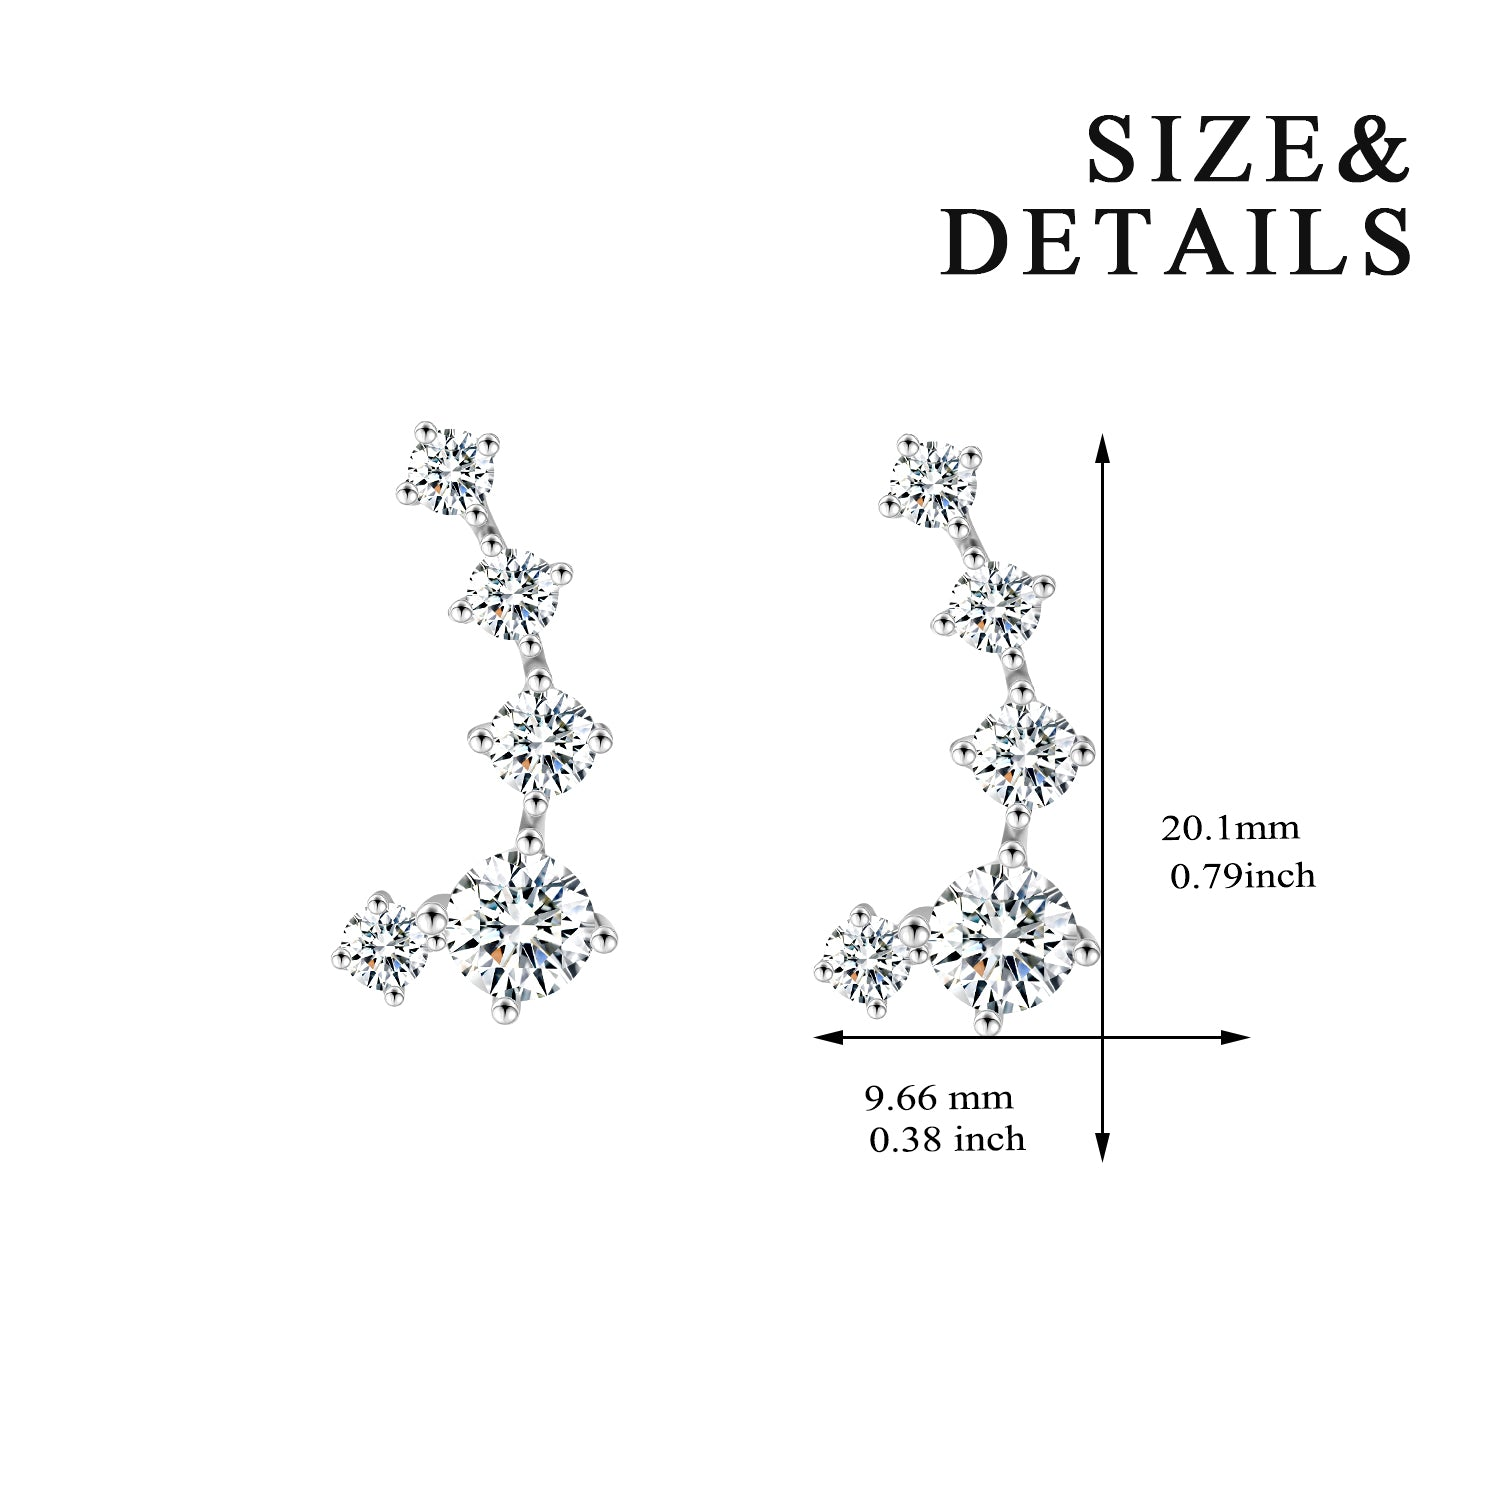 Fashion Jewellery Accessories Latest Design Shining Zirconia Earrings Designs